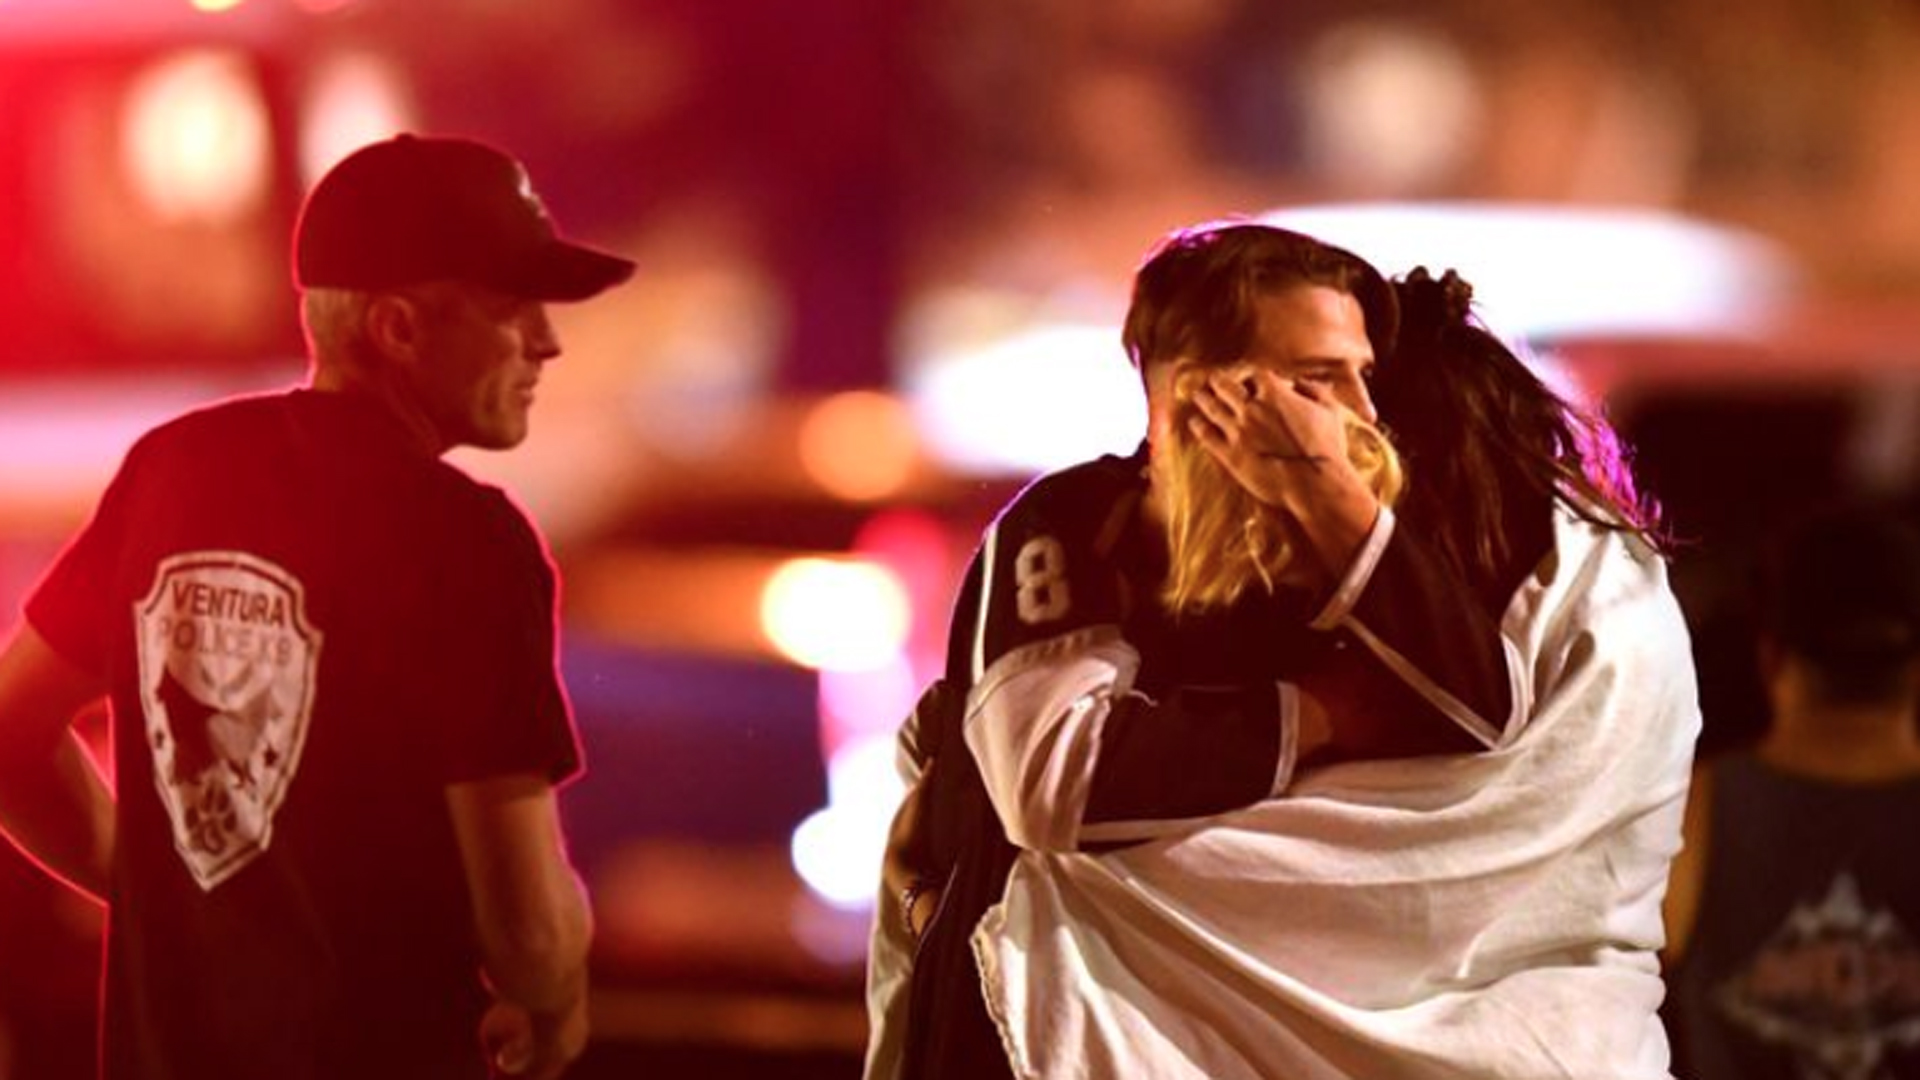 People comfort each other after a mass shooting at the Borderline Bar & Grill on Nov. 8, 2018. (Credit: Wally Skalij / Los Angeles Times)